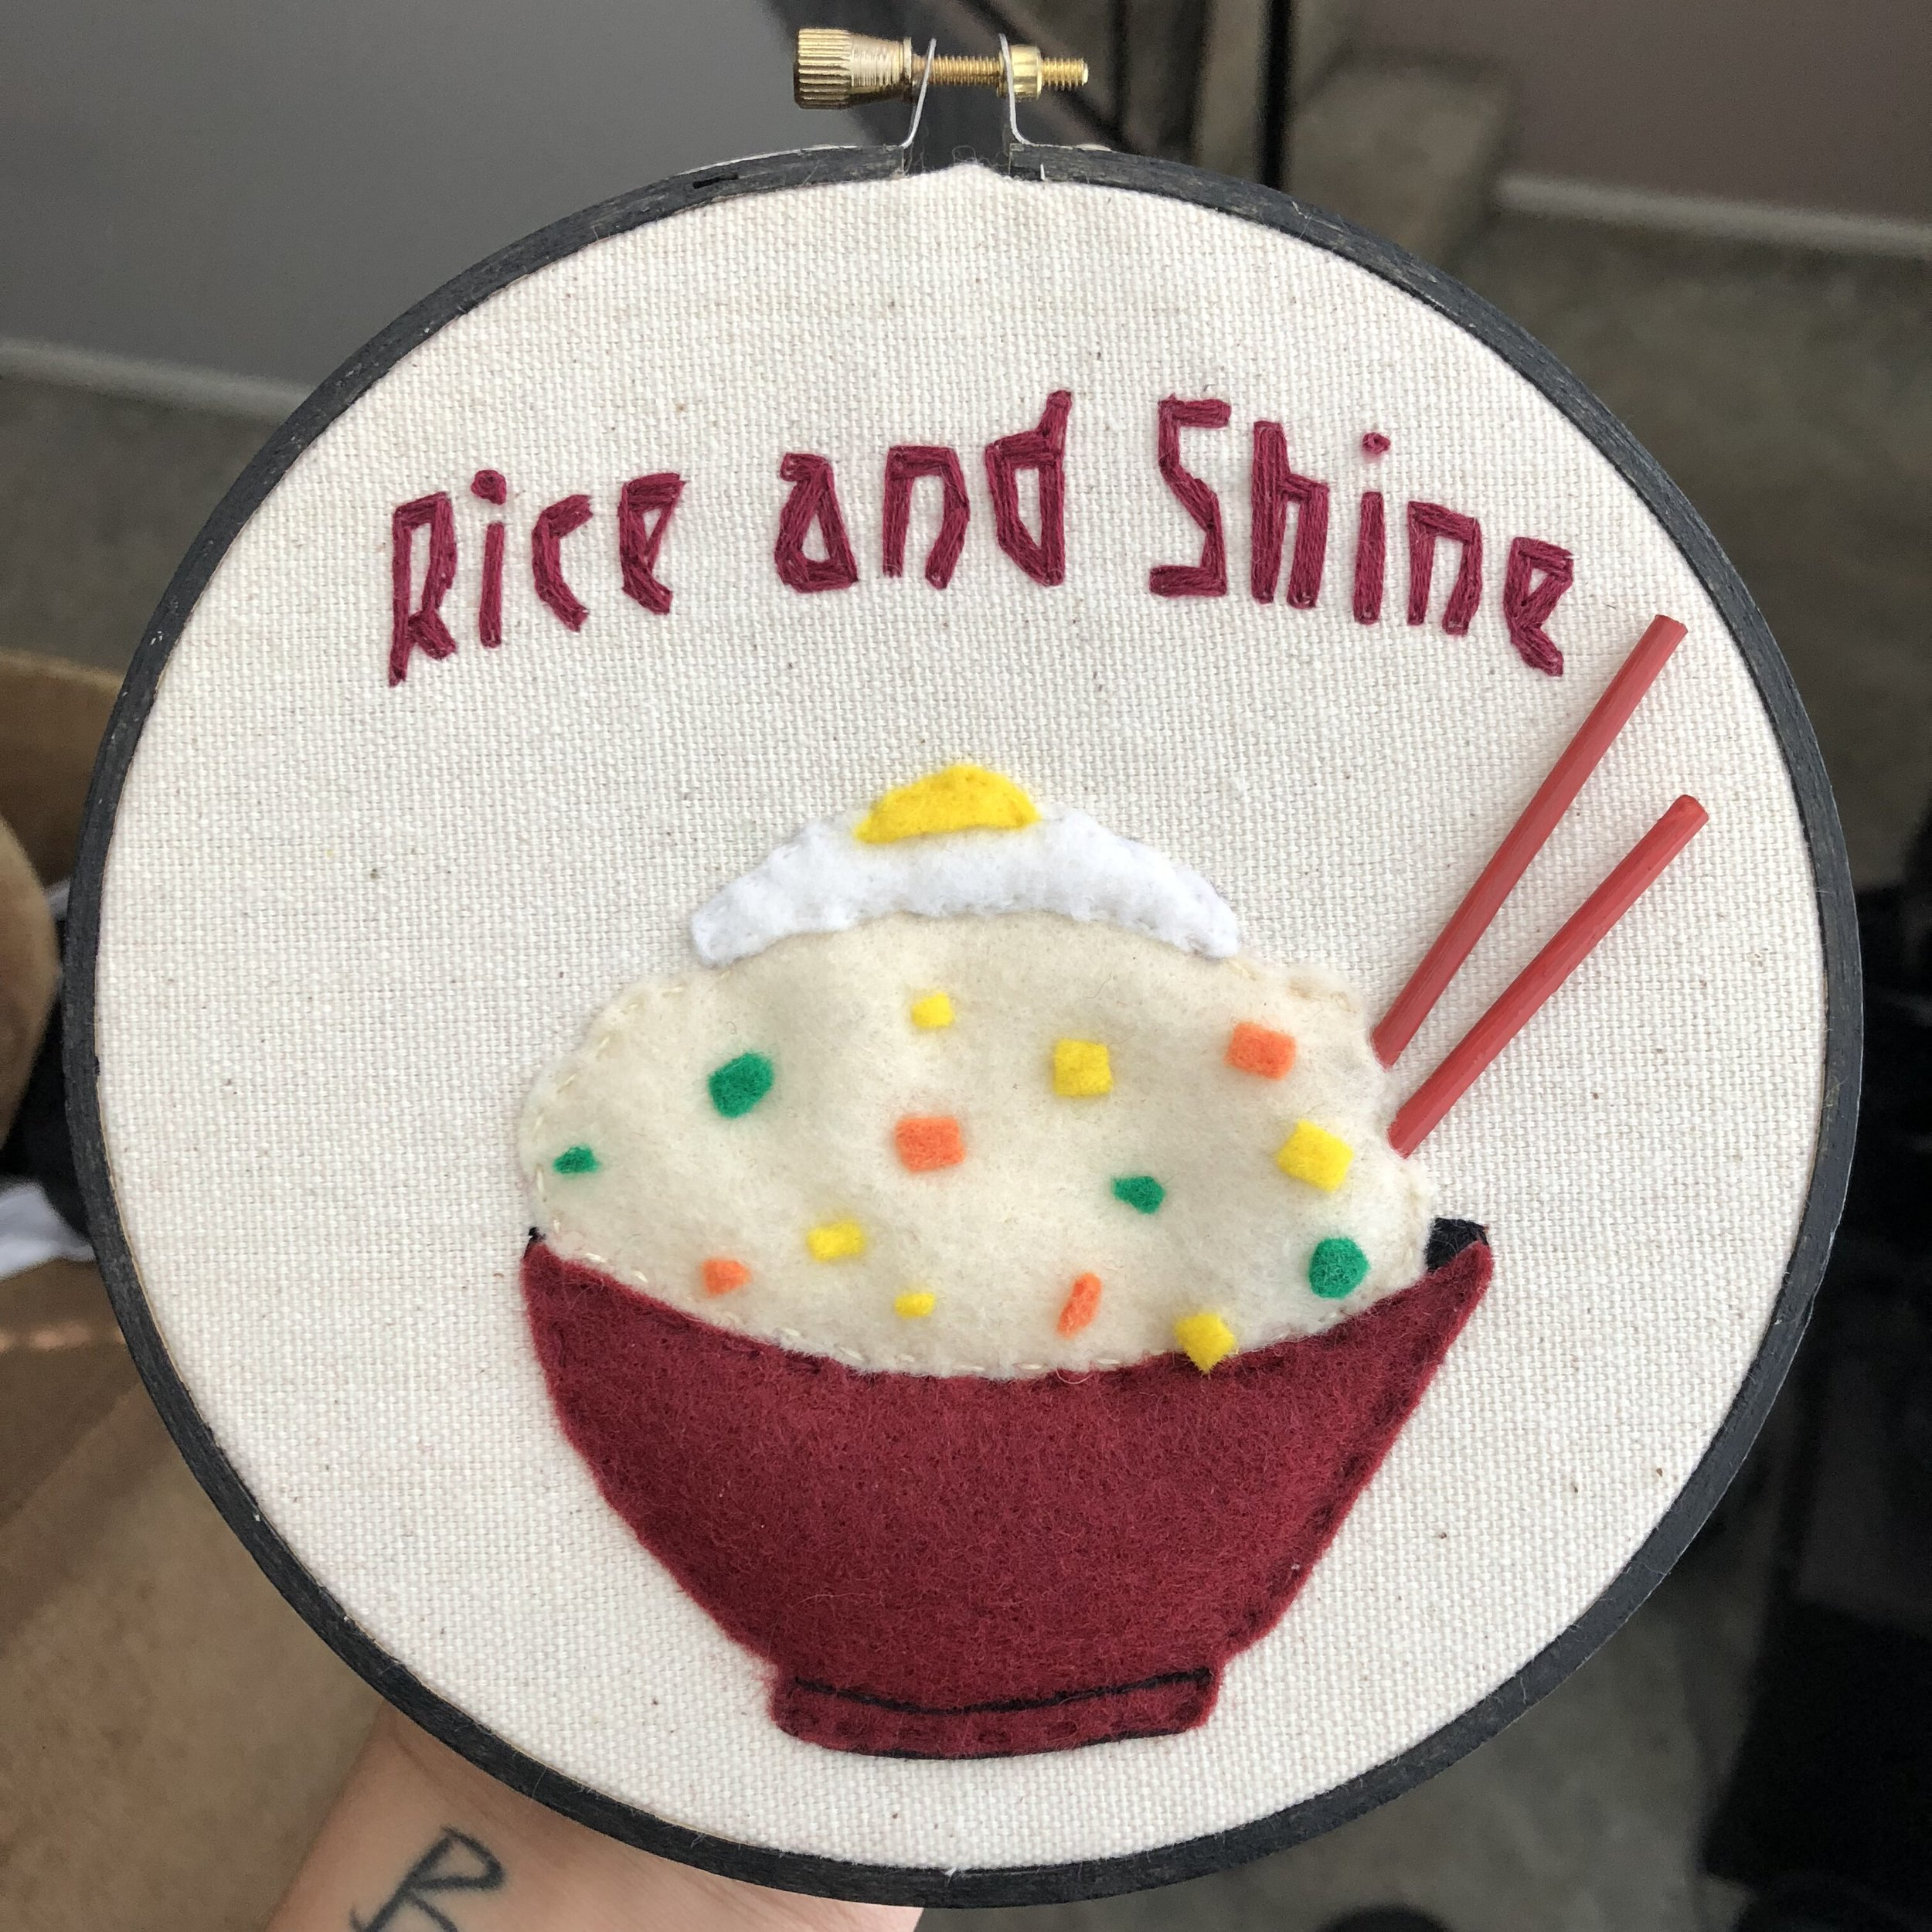 - I've never had something embroidered before. It's more than a painting cause it's got all the cool textures. I like the chopsticks and all the details that were put on the image to make it look like fried rice. The font always works out really well cause it feels like the theme matches the fried rice embroidery.